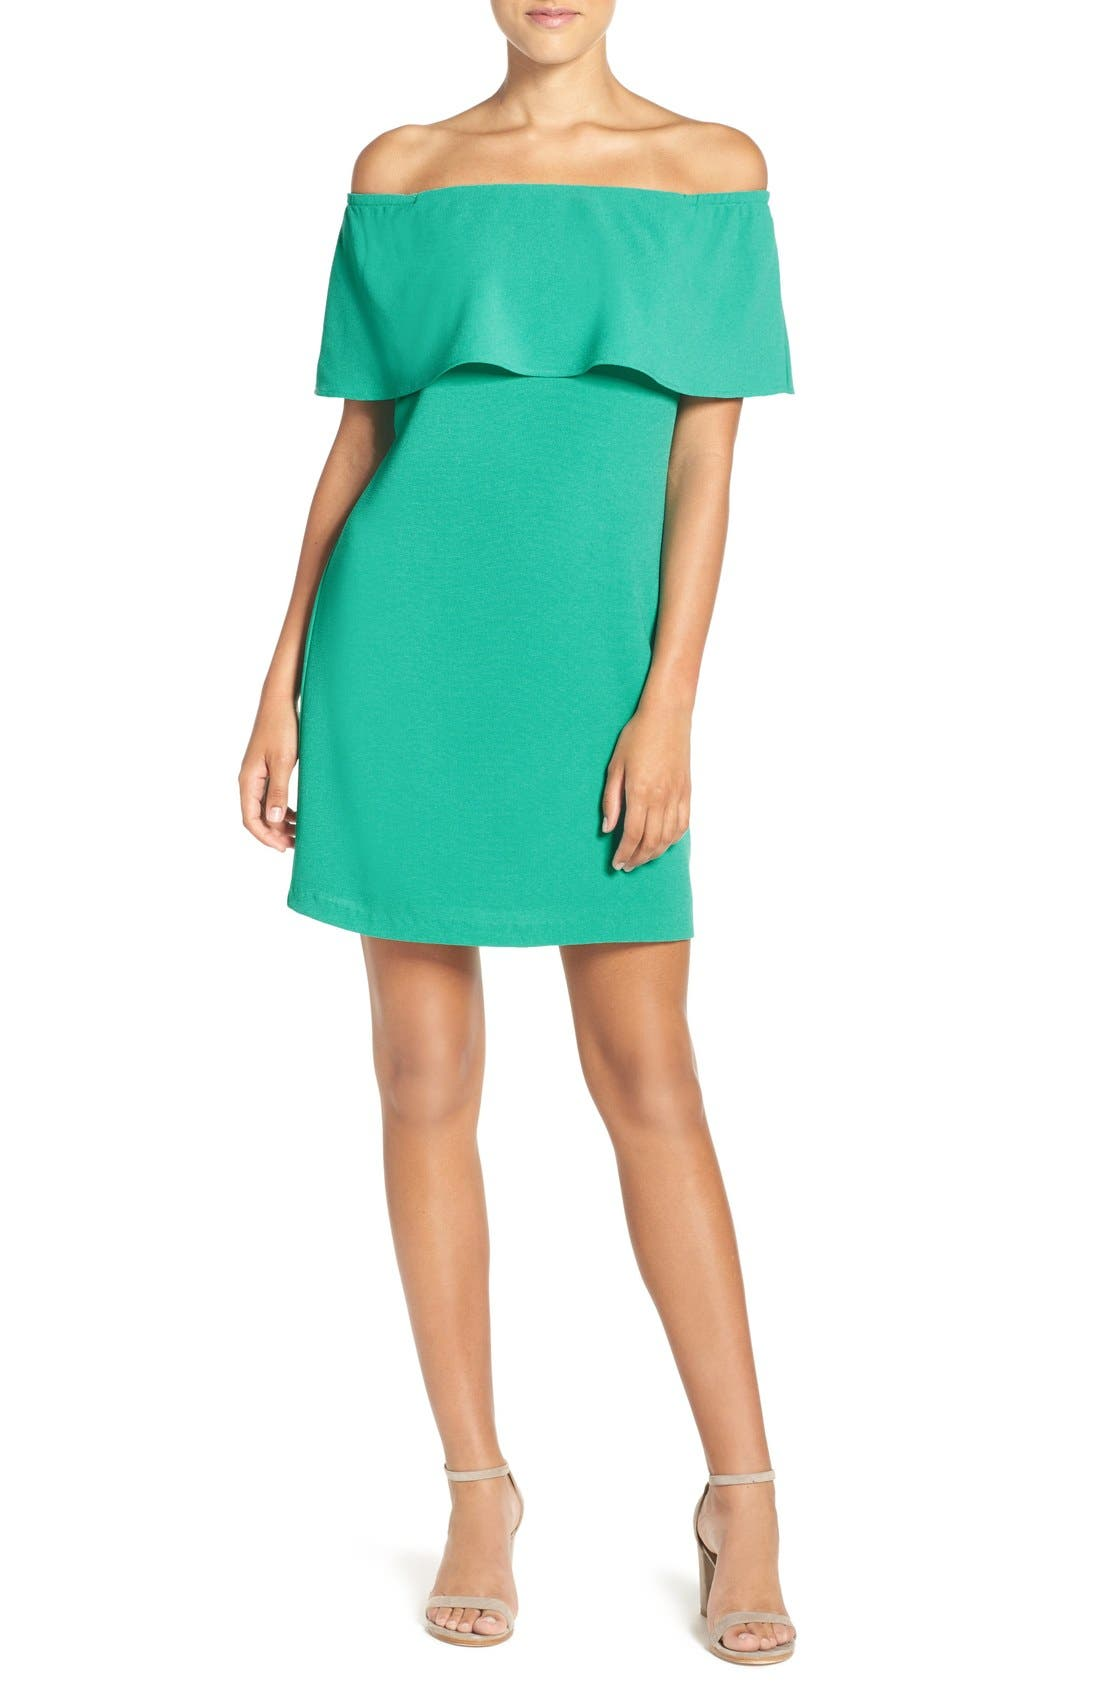 Women's Green Cocktail & Party Dresses | Nordstrom